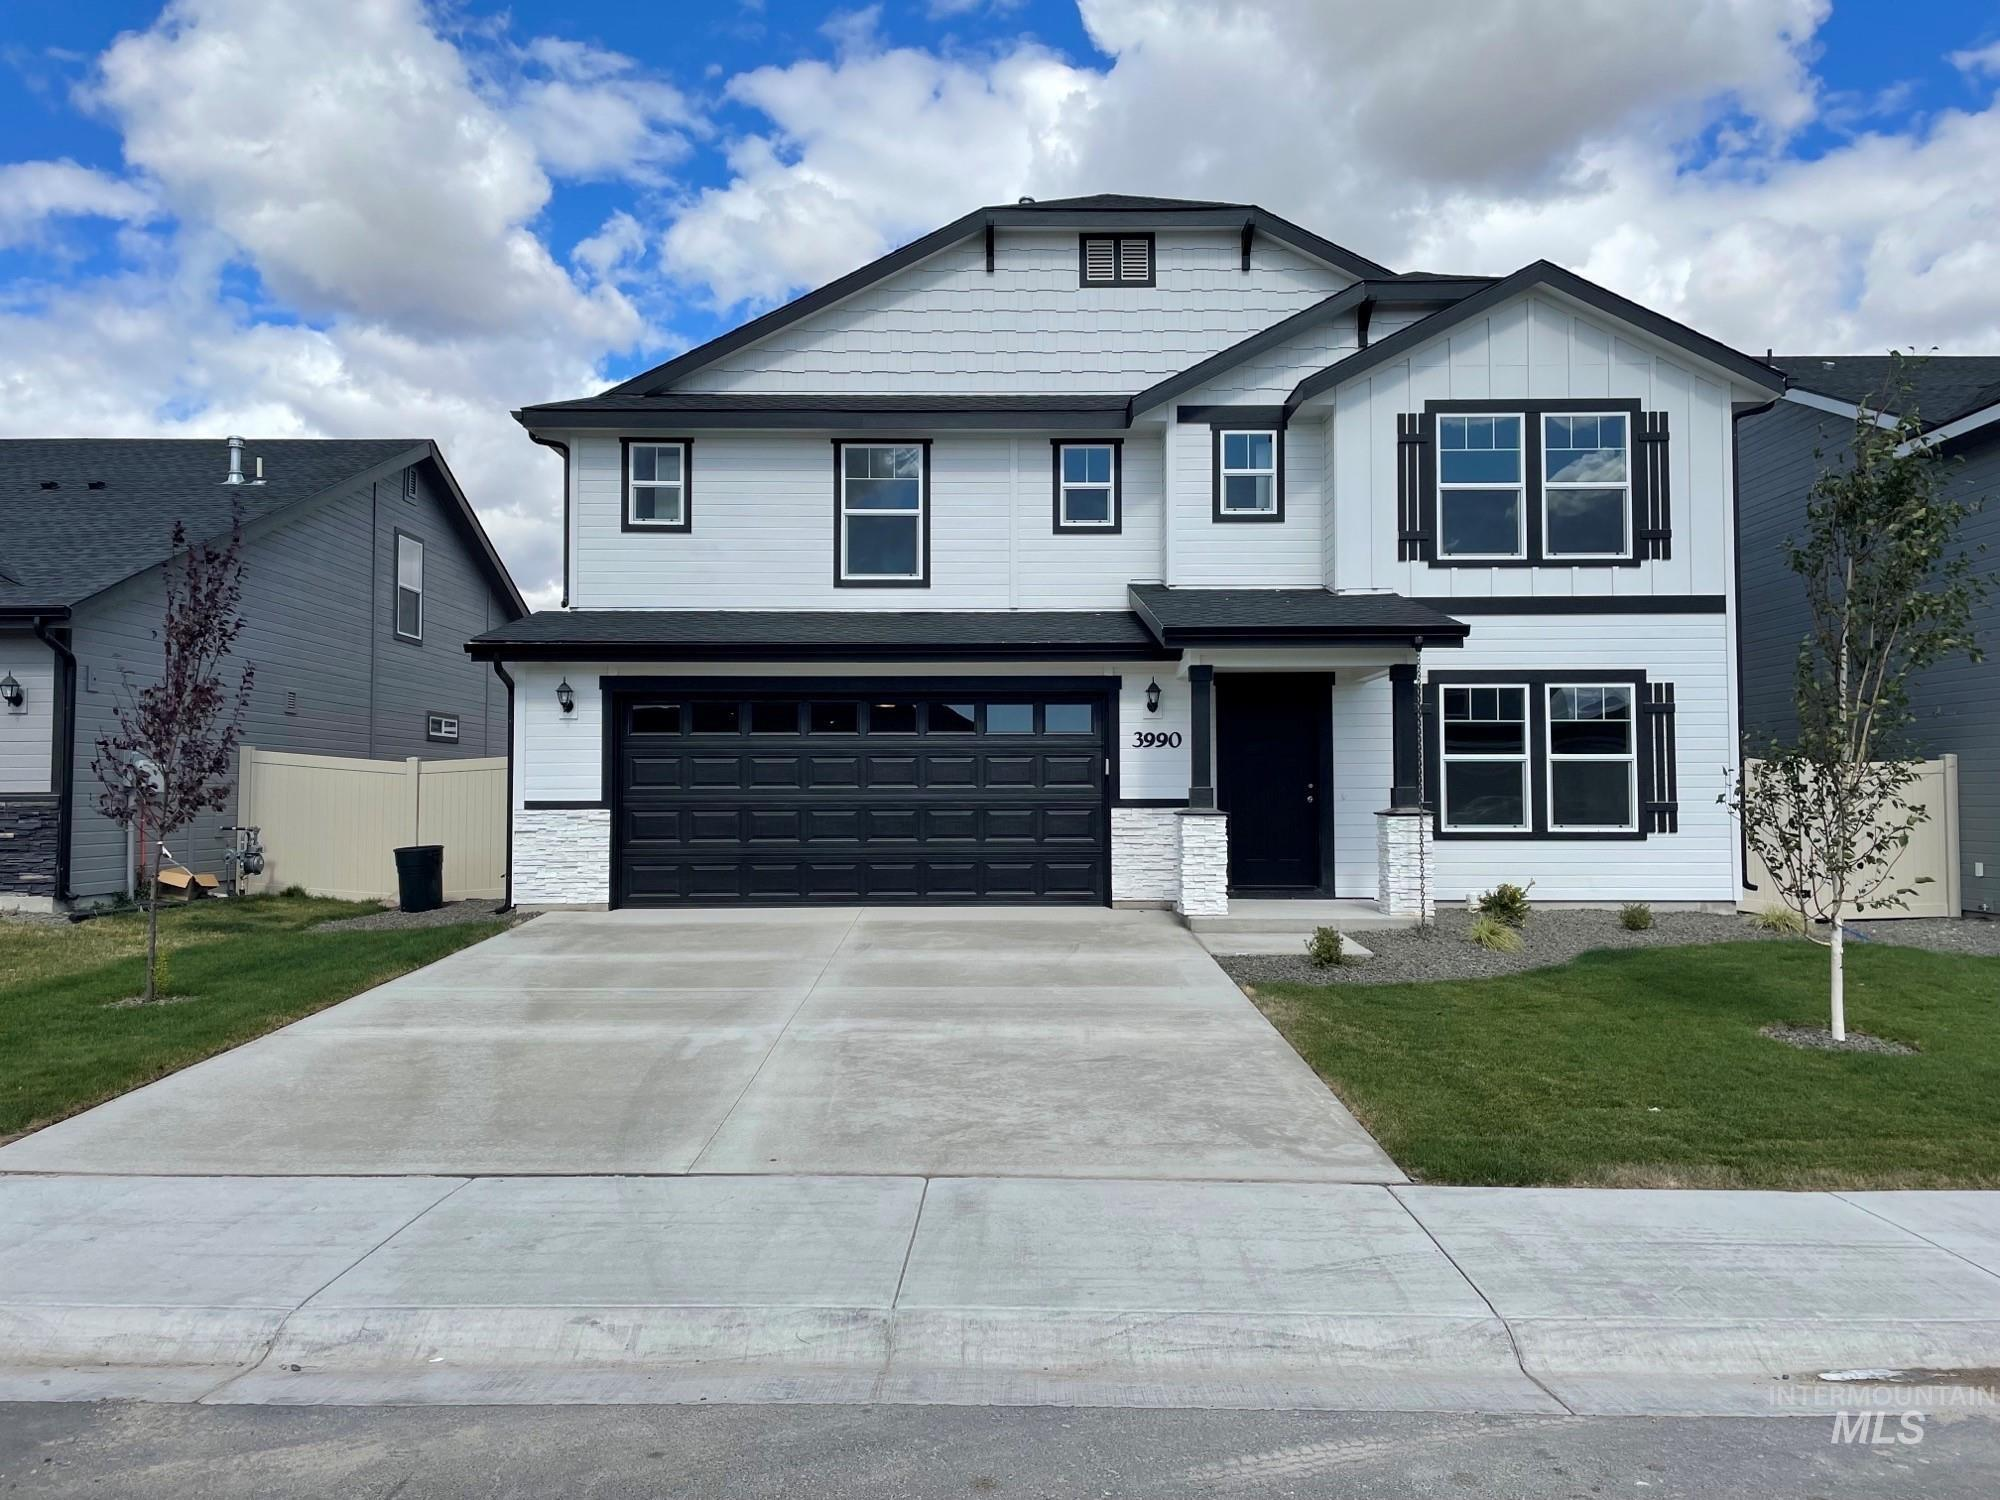 Pre-sold Spruce with Heritage Elevation. Photo Similar. This home features Stainless steel appliances, gas fireplace, upgraded cabinets, sheetrock wrapped windows, insulated garage, gas range, and more!